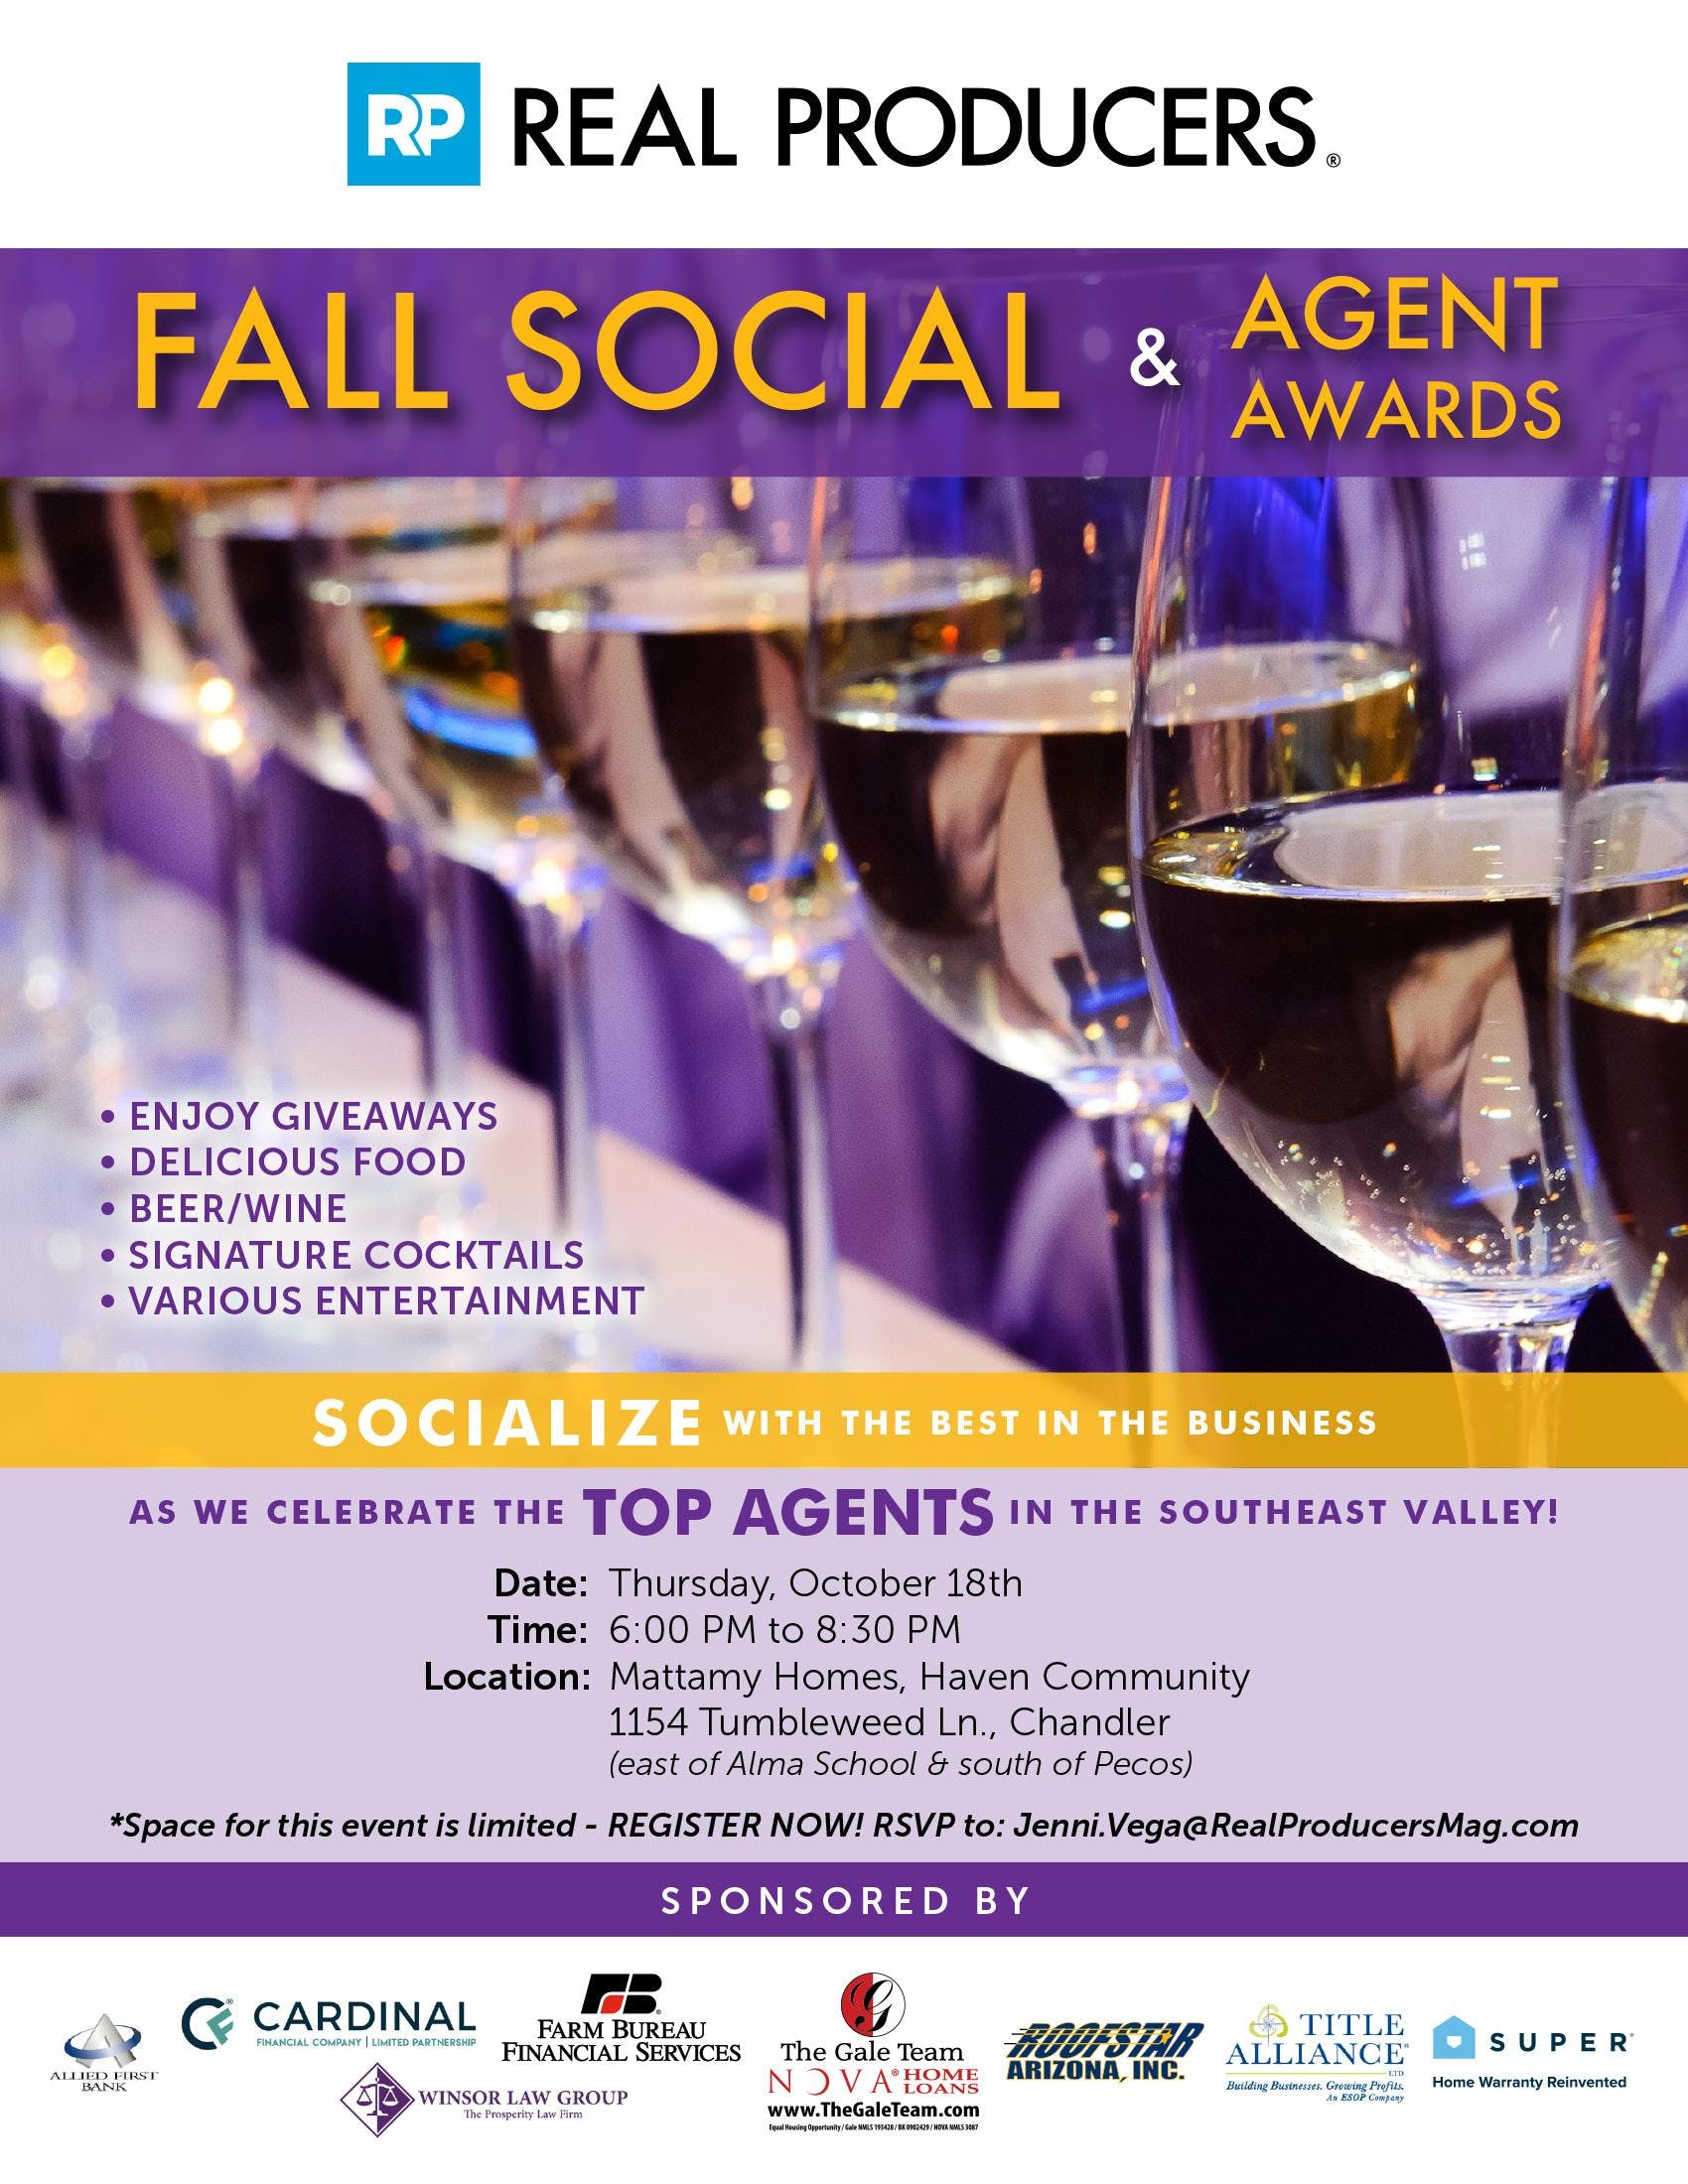 Real Producers Fall Social & Agent Awards